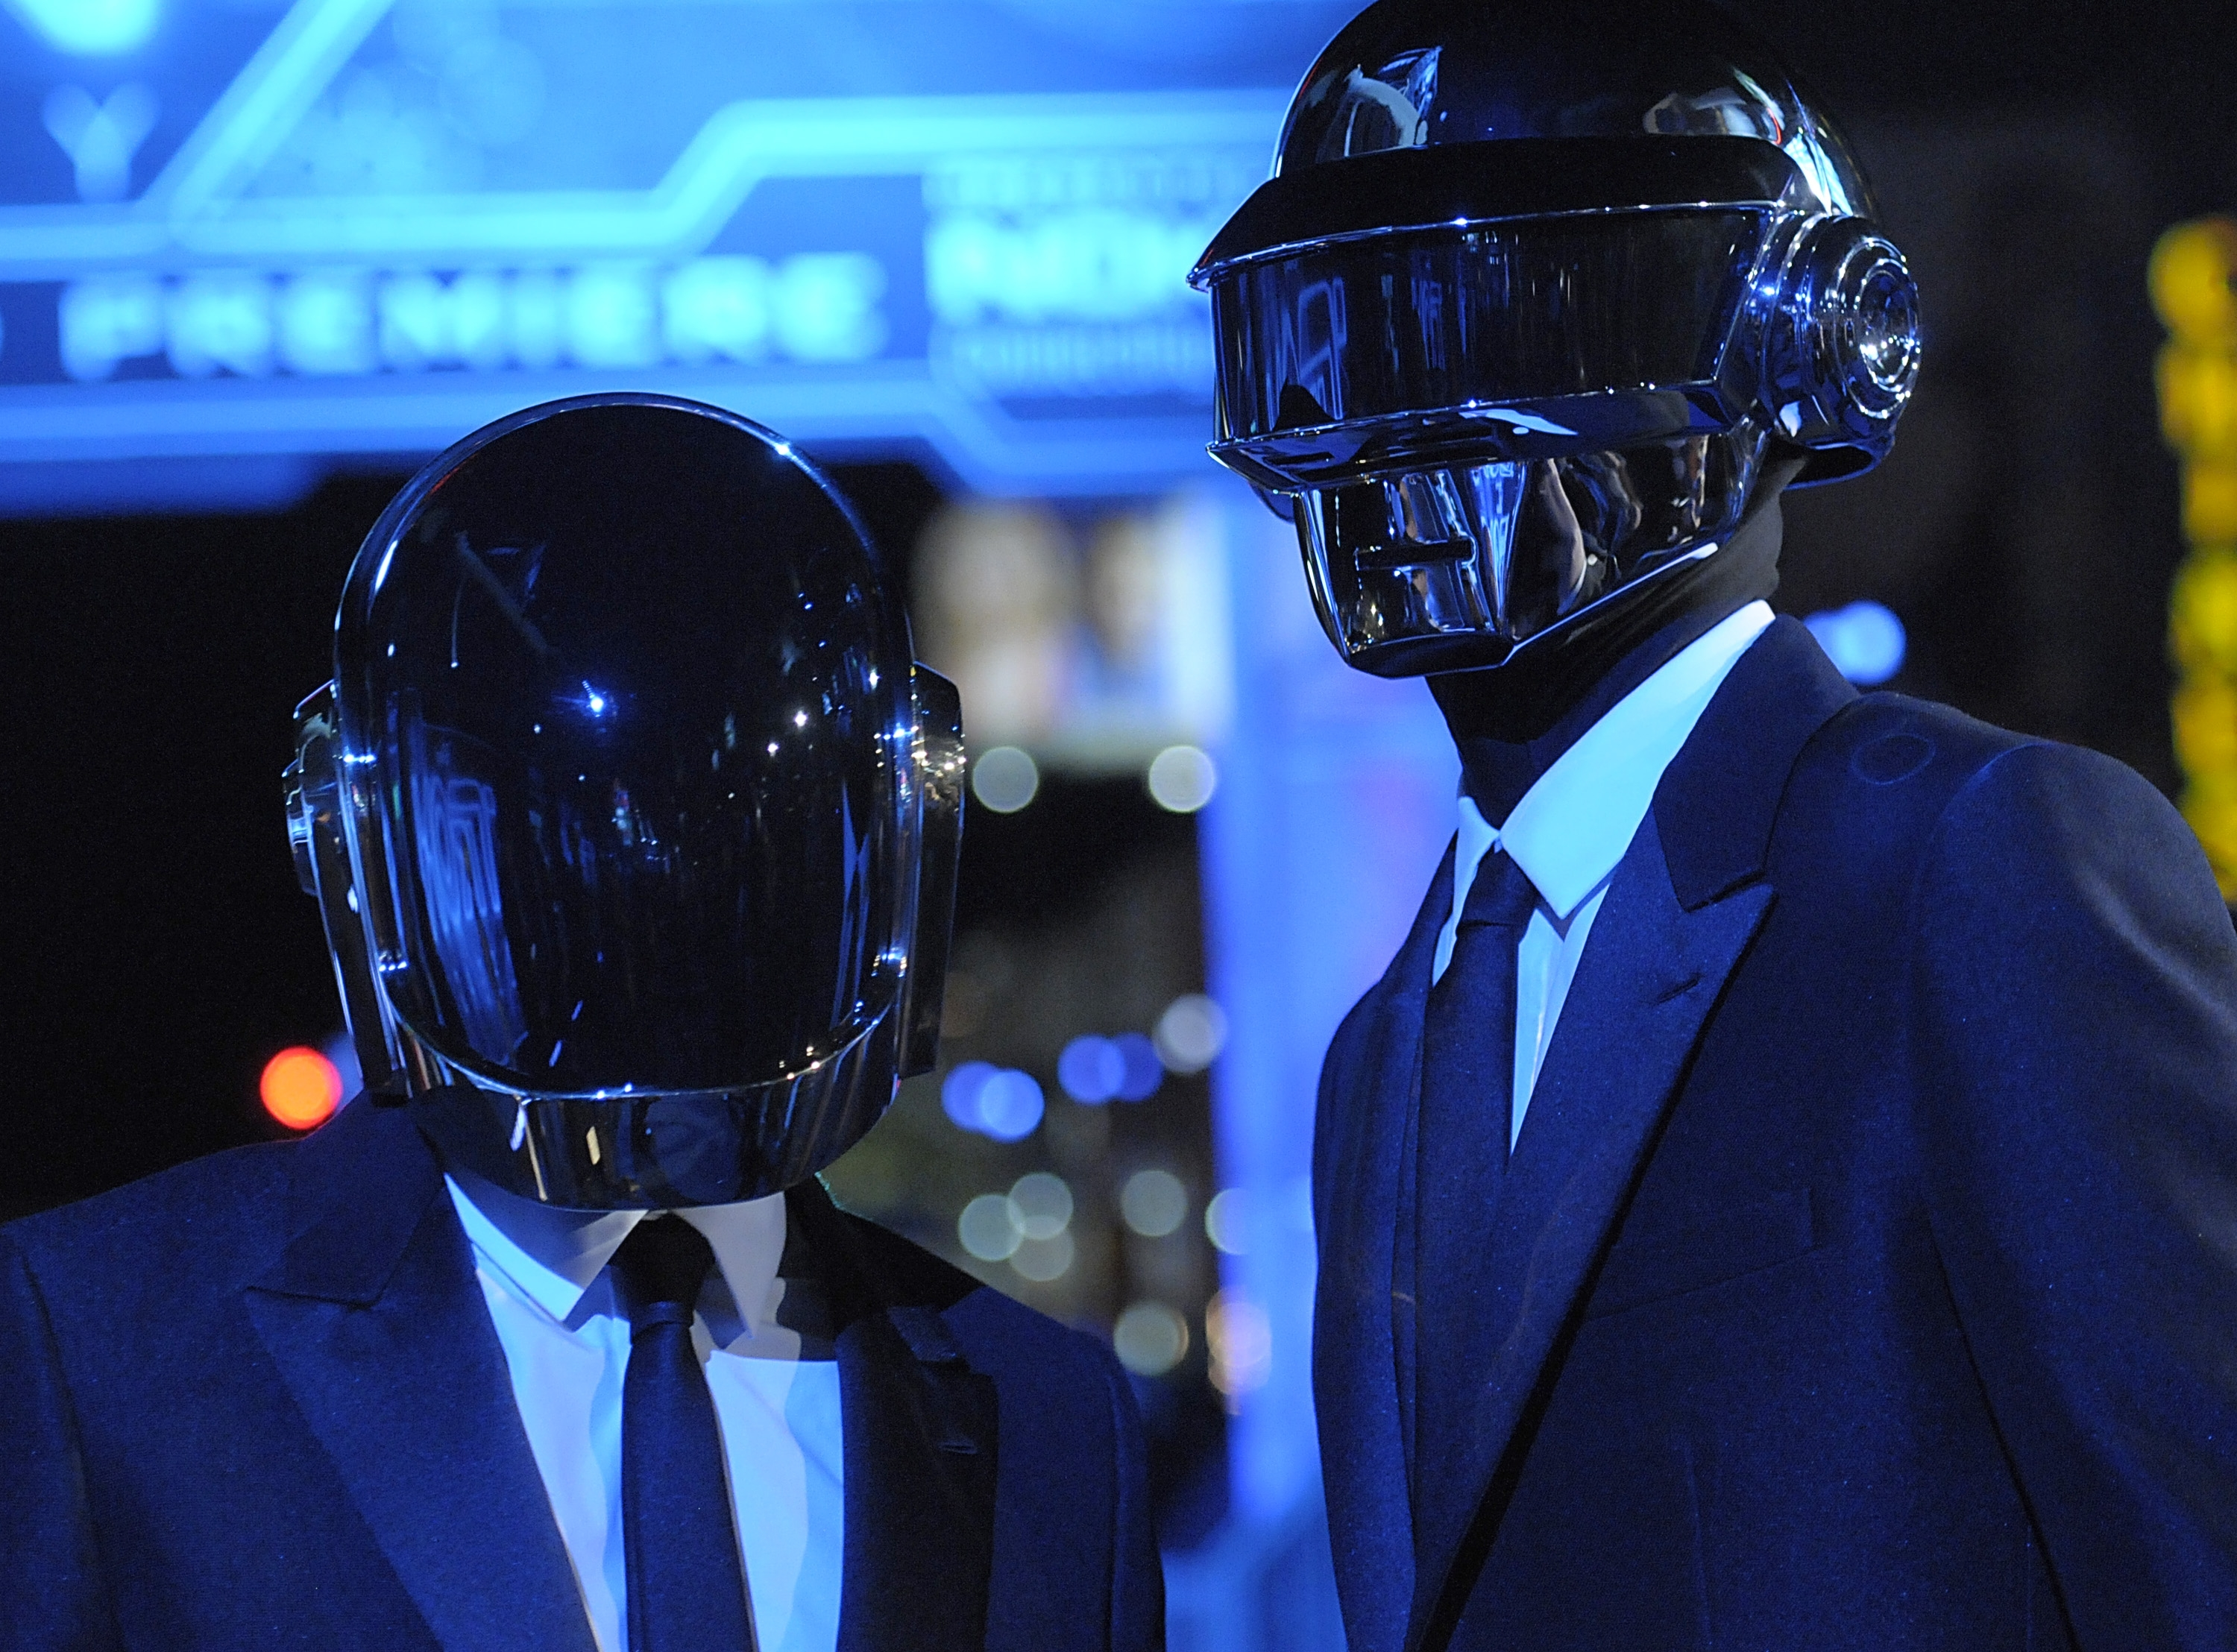 The Daft Punk keyboard is your new favourite way to procrastinate